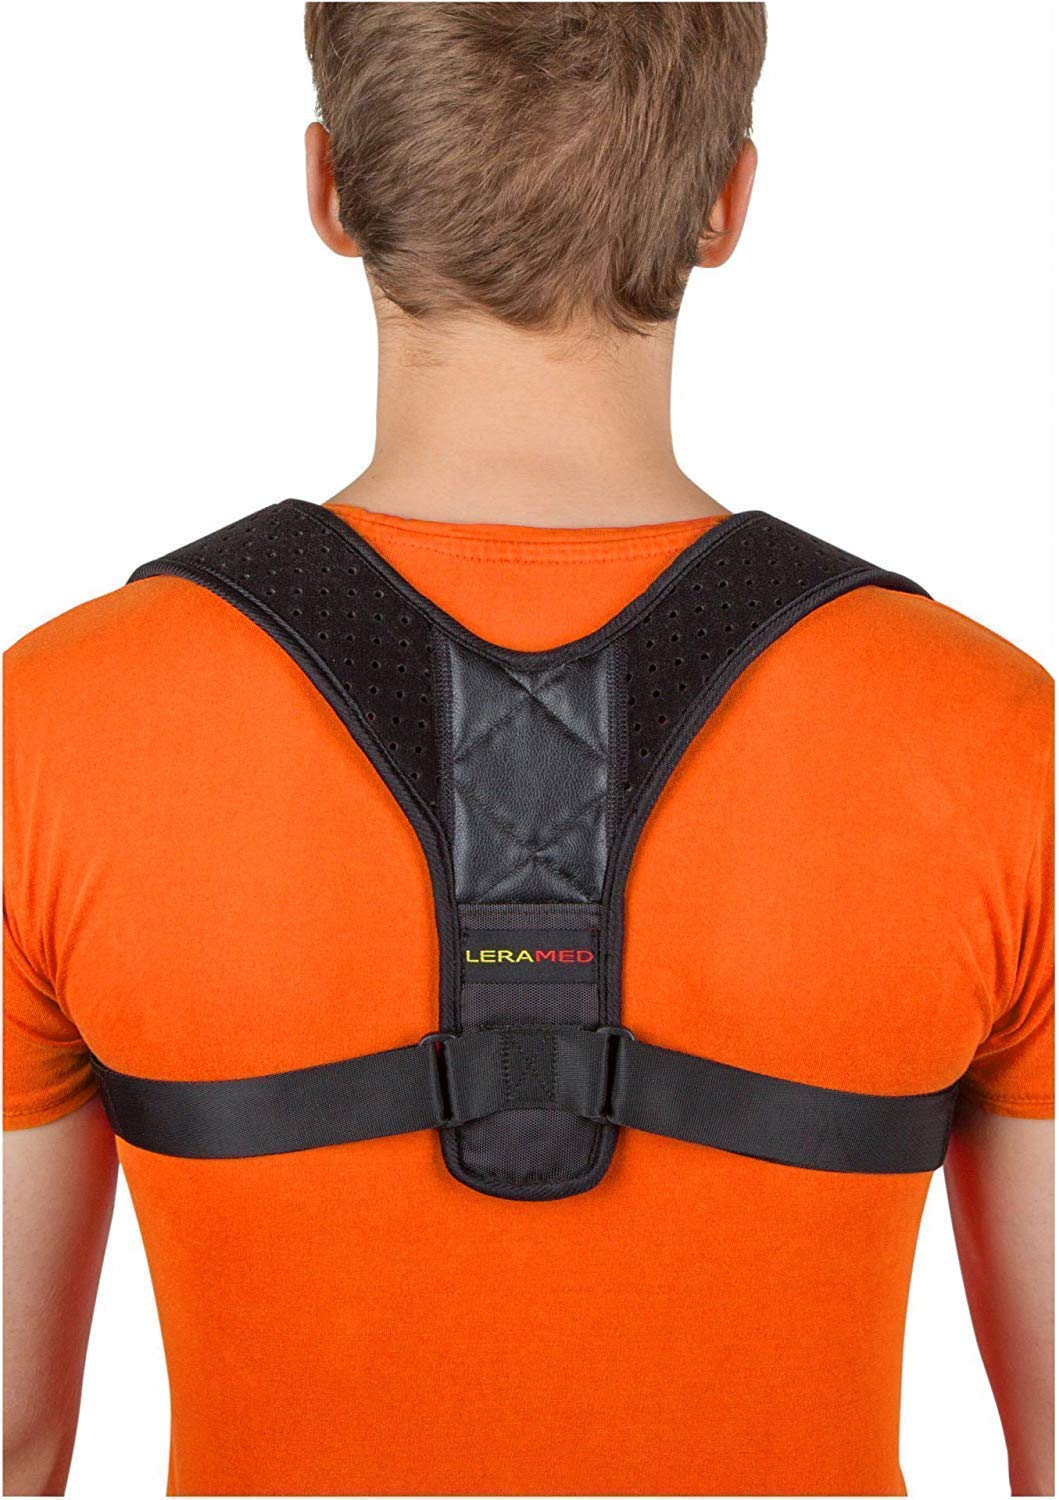 [New 2019] Posture Corrector for Women and Men | Neck Pain Relief | Adjustable Upper Back Brace for Clavicle Support best men's' posture corrector